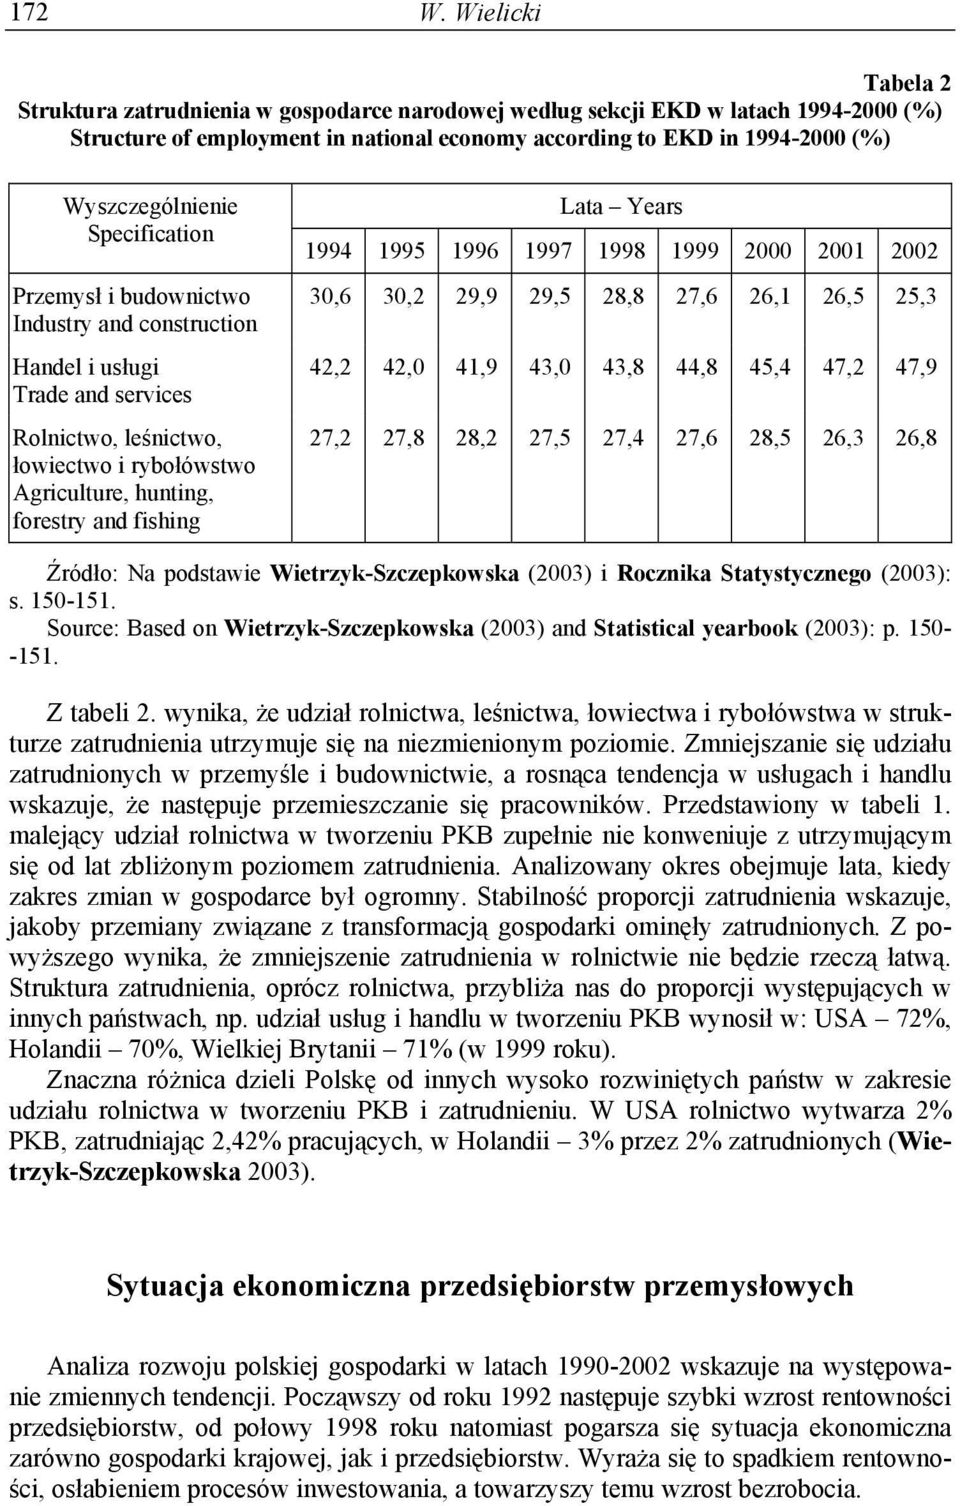 Specification Przemysł i budownictwo Industry and construction Handel i usługi Trade and services Rolnictwo, leśnictwo, łowiectwo i rybołówstwo Agriculture, hunting, forestry and fishing Lata Years